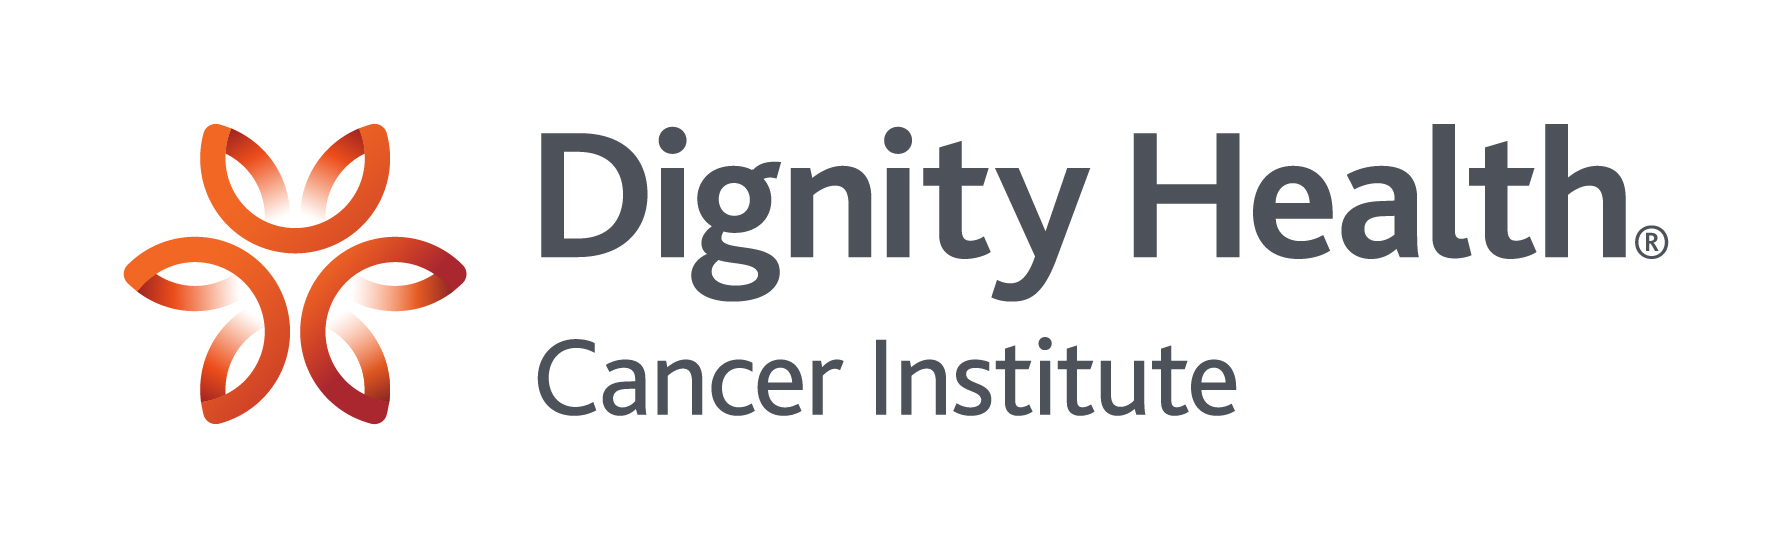 Medical Director, Hematology and Oncology in Phoenix, AZ - Dignity Health - Cancer Institute at St. Joseph's Hospital and Medical Center